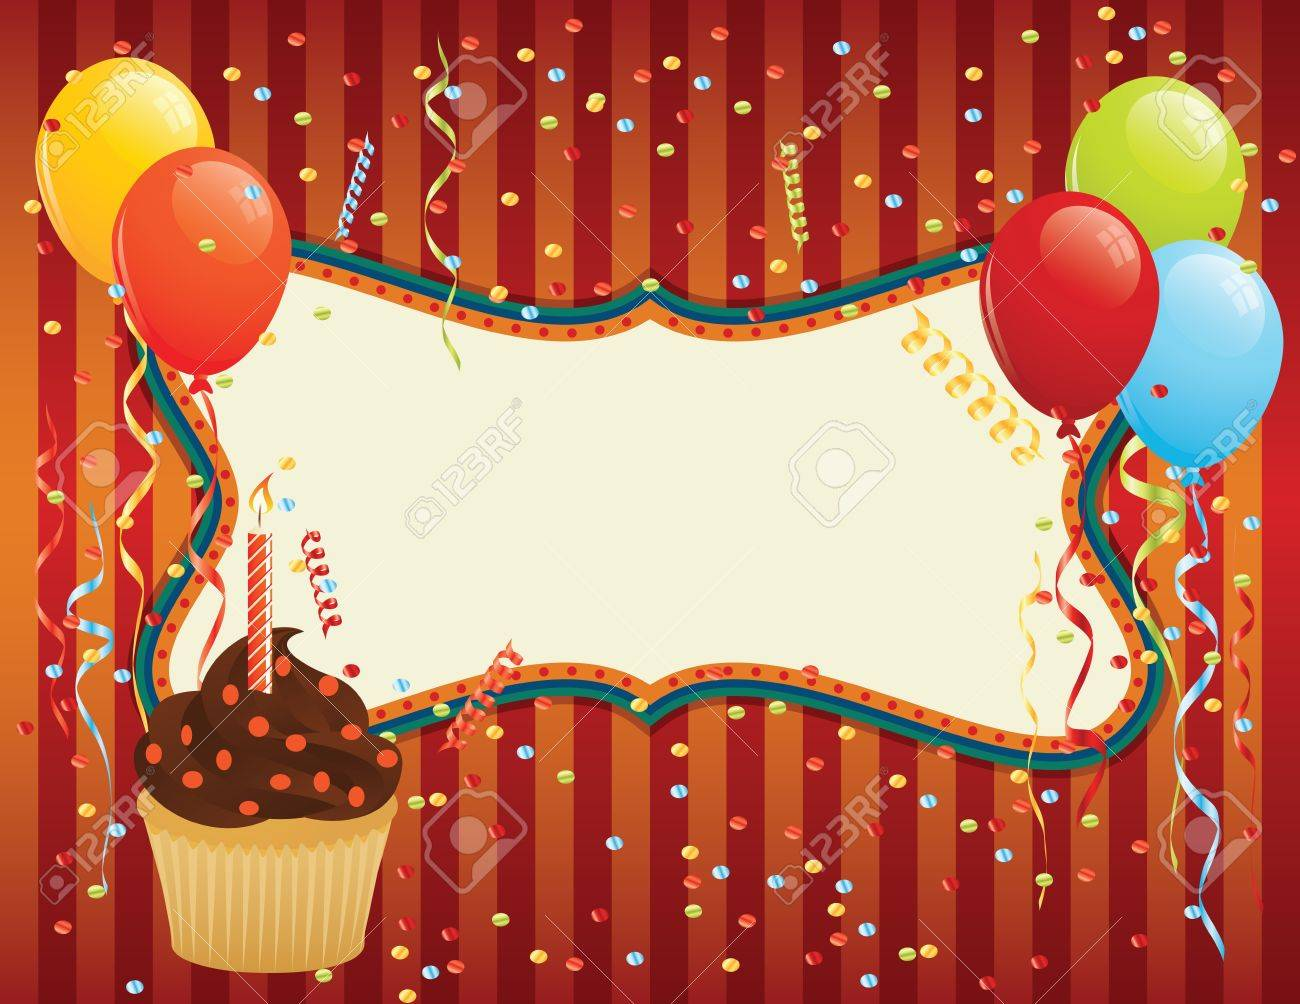 Birthday Card with cupcake, balloons and confetti. CMYK EPS 8 with global colors vector illustration. Stock Vector - 10442258